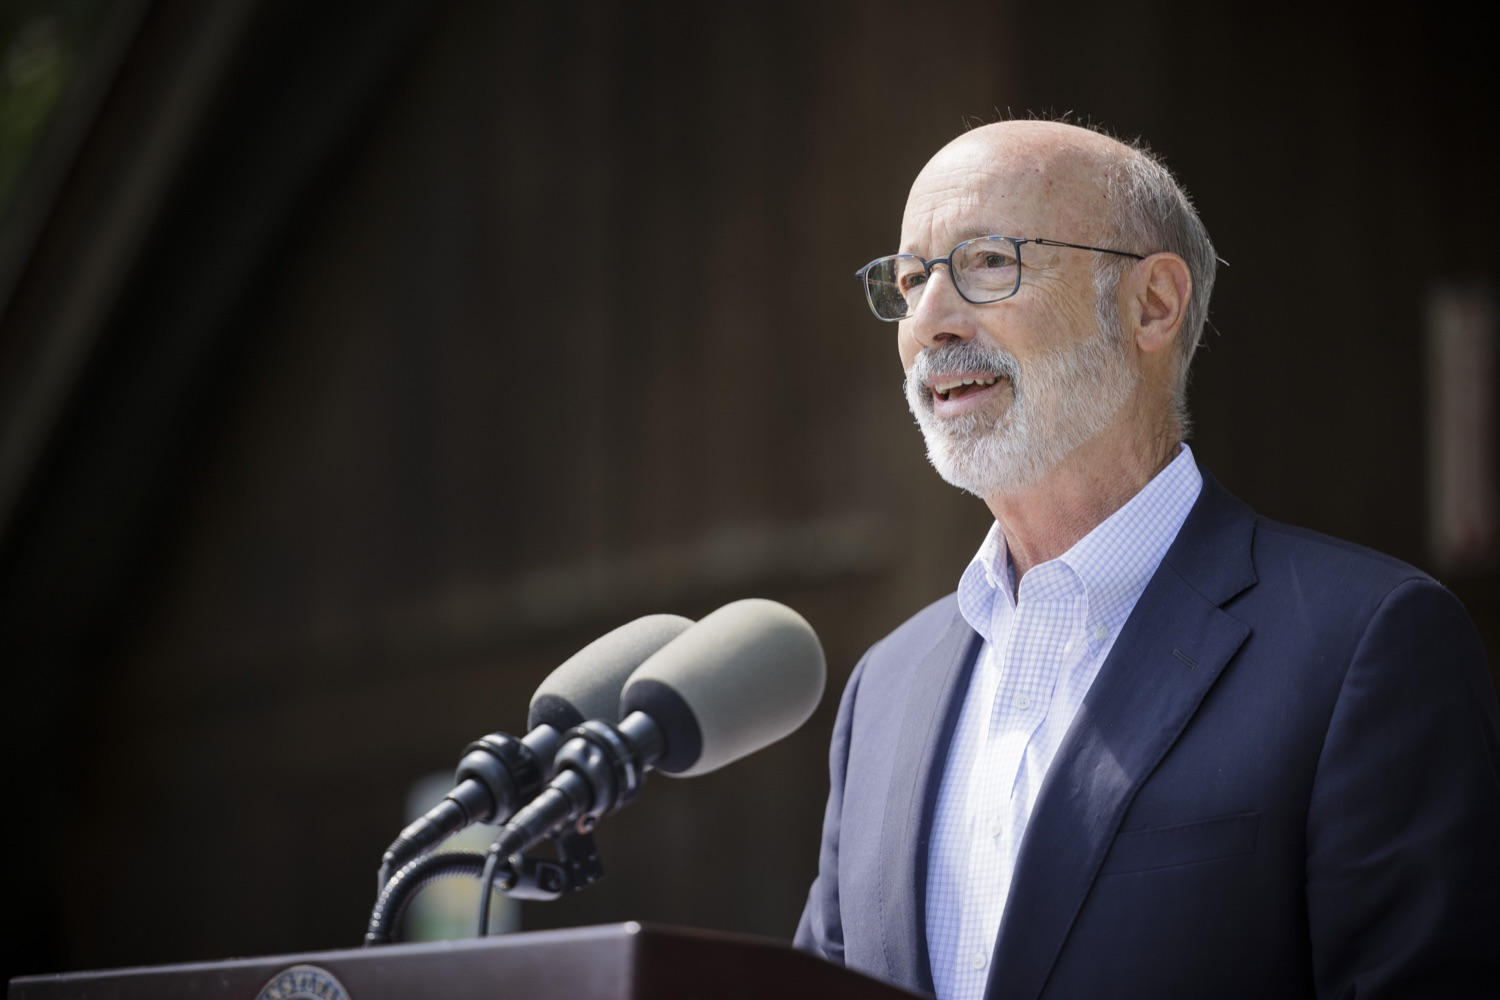 """<a href=""""https://filesource.wostreaming.net/commonwealthofpa/photo/19111_gov_parkVaccines_dz_005.jpg"""" target=""""_blank"""">⇣Download Photo<br></a>Pennsylvania Governor Tom Wolf speaking with the press.  Governor Tom Wolf today announced that the Department of Health (DOH) and Department of Conservation and Natural Resources (DCNR) are partnering to hold COVID-19 vaccine clinics at five state parks across the commonwealth to help expand access to the COVID-19 vaccine.  Harrisburg, PA -- September 10, 2021"""